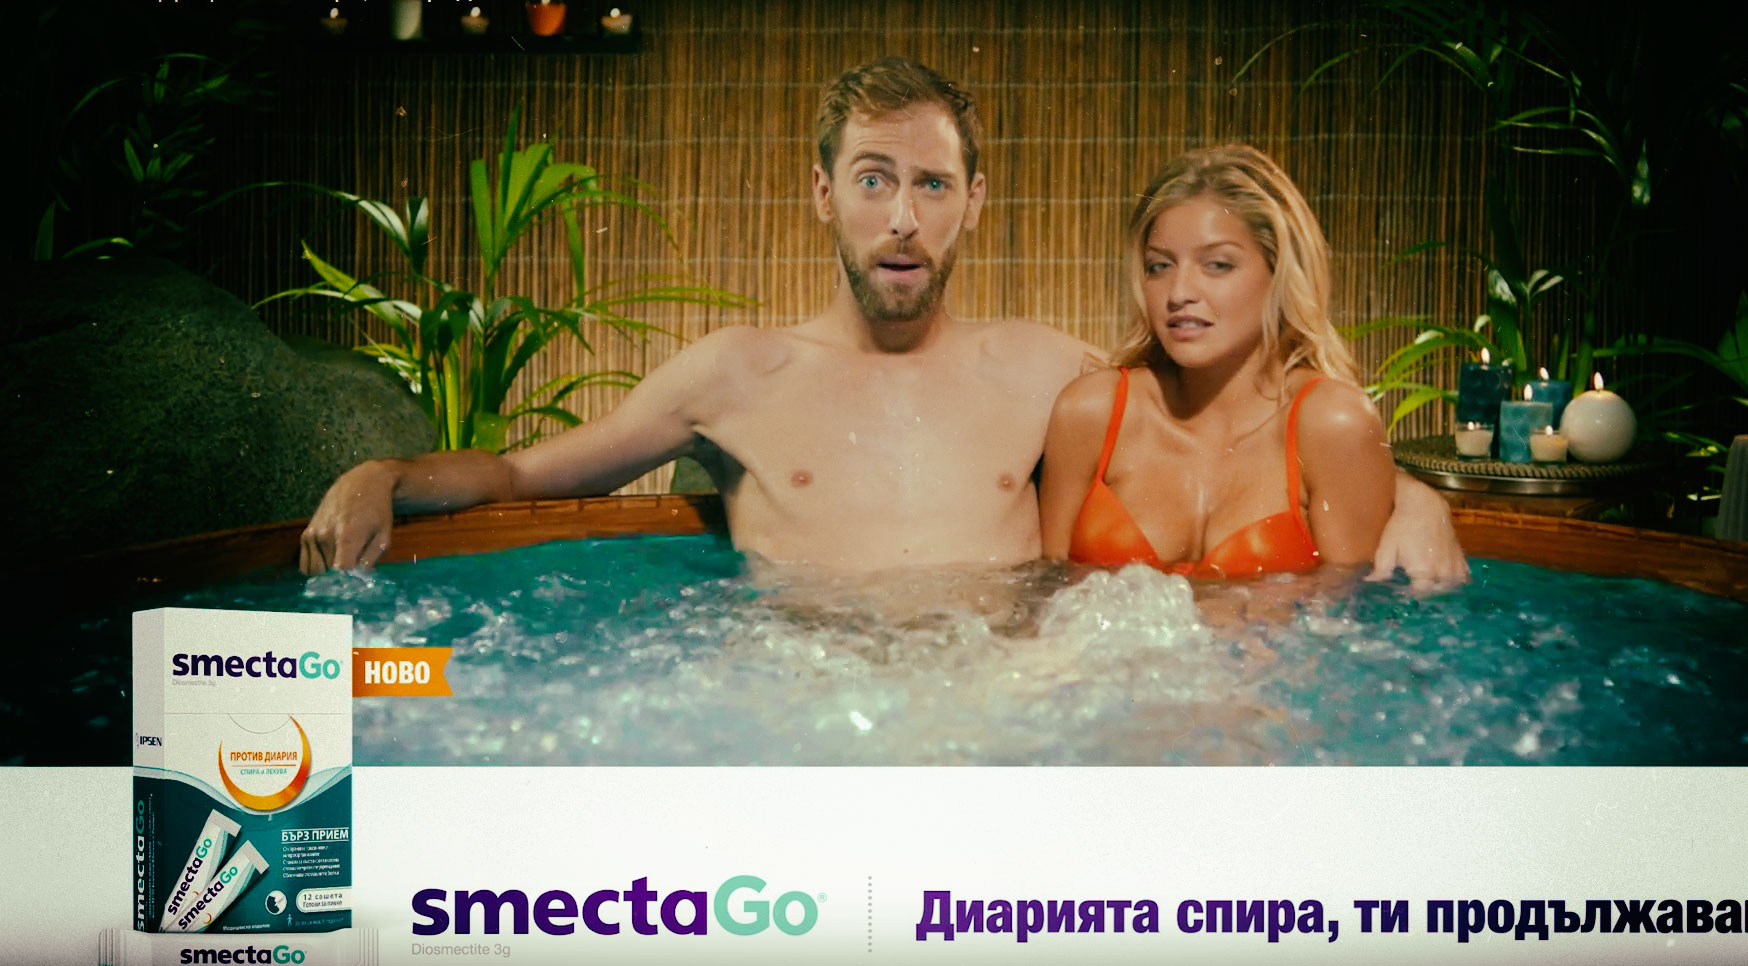 SmectaGo(tv spot)